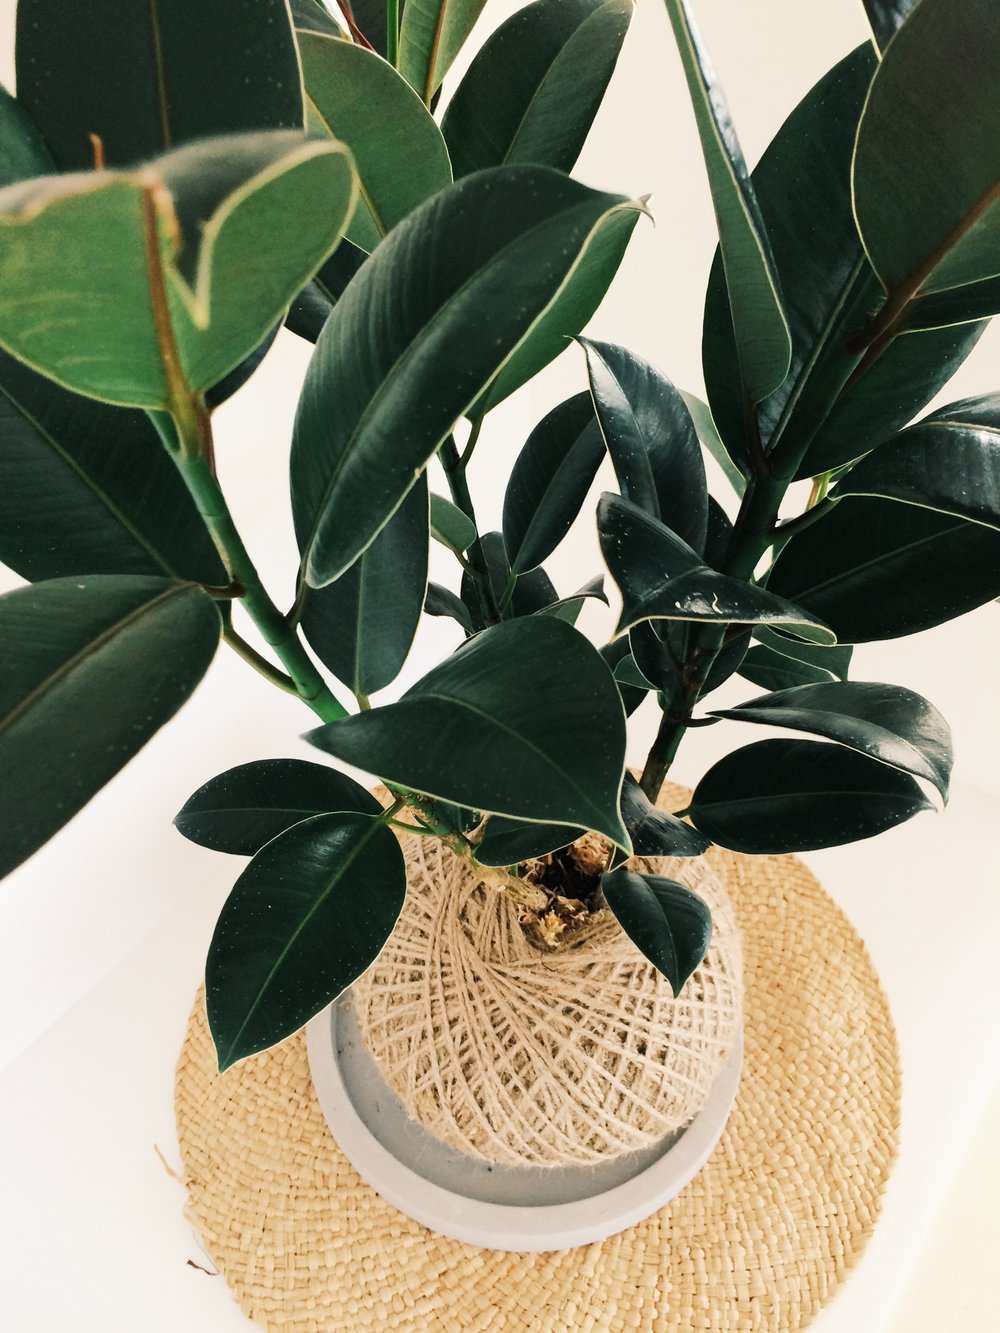 Rubber Plant (Image: The Gypsy Collective)